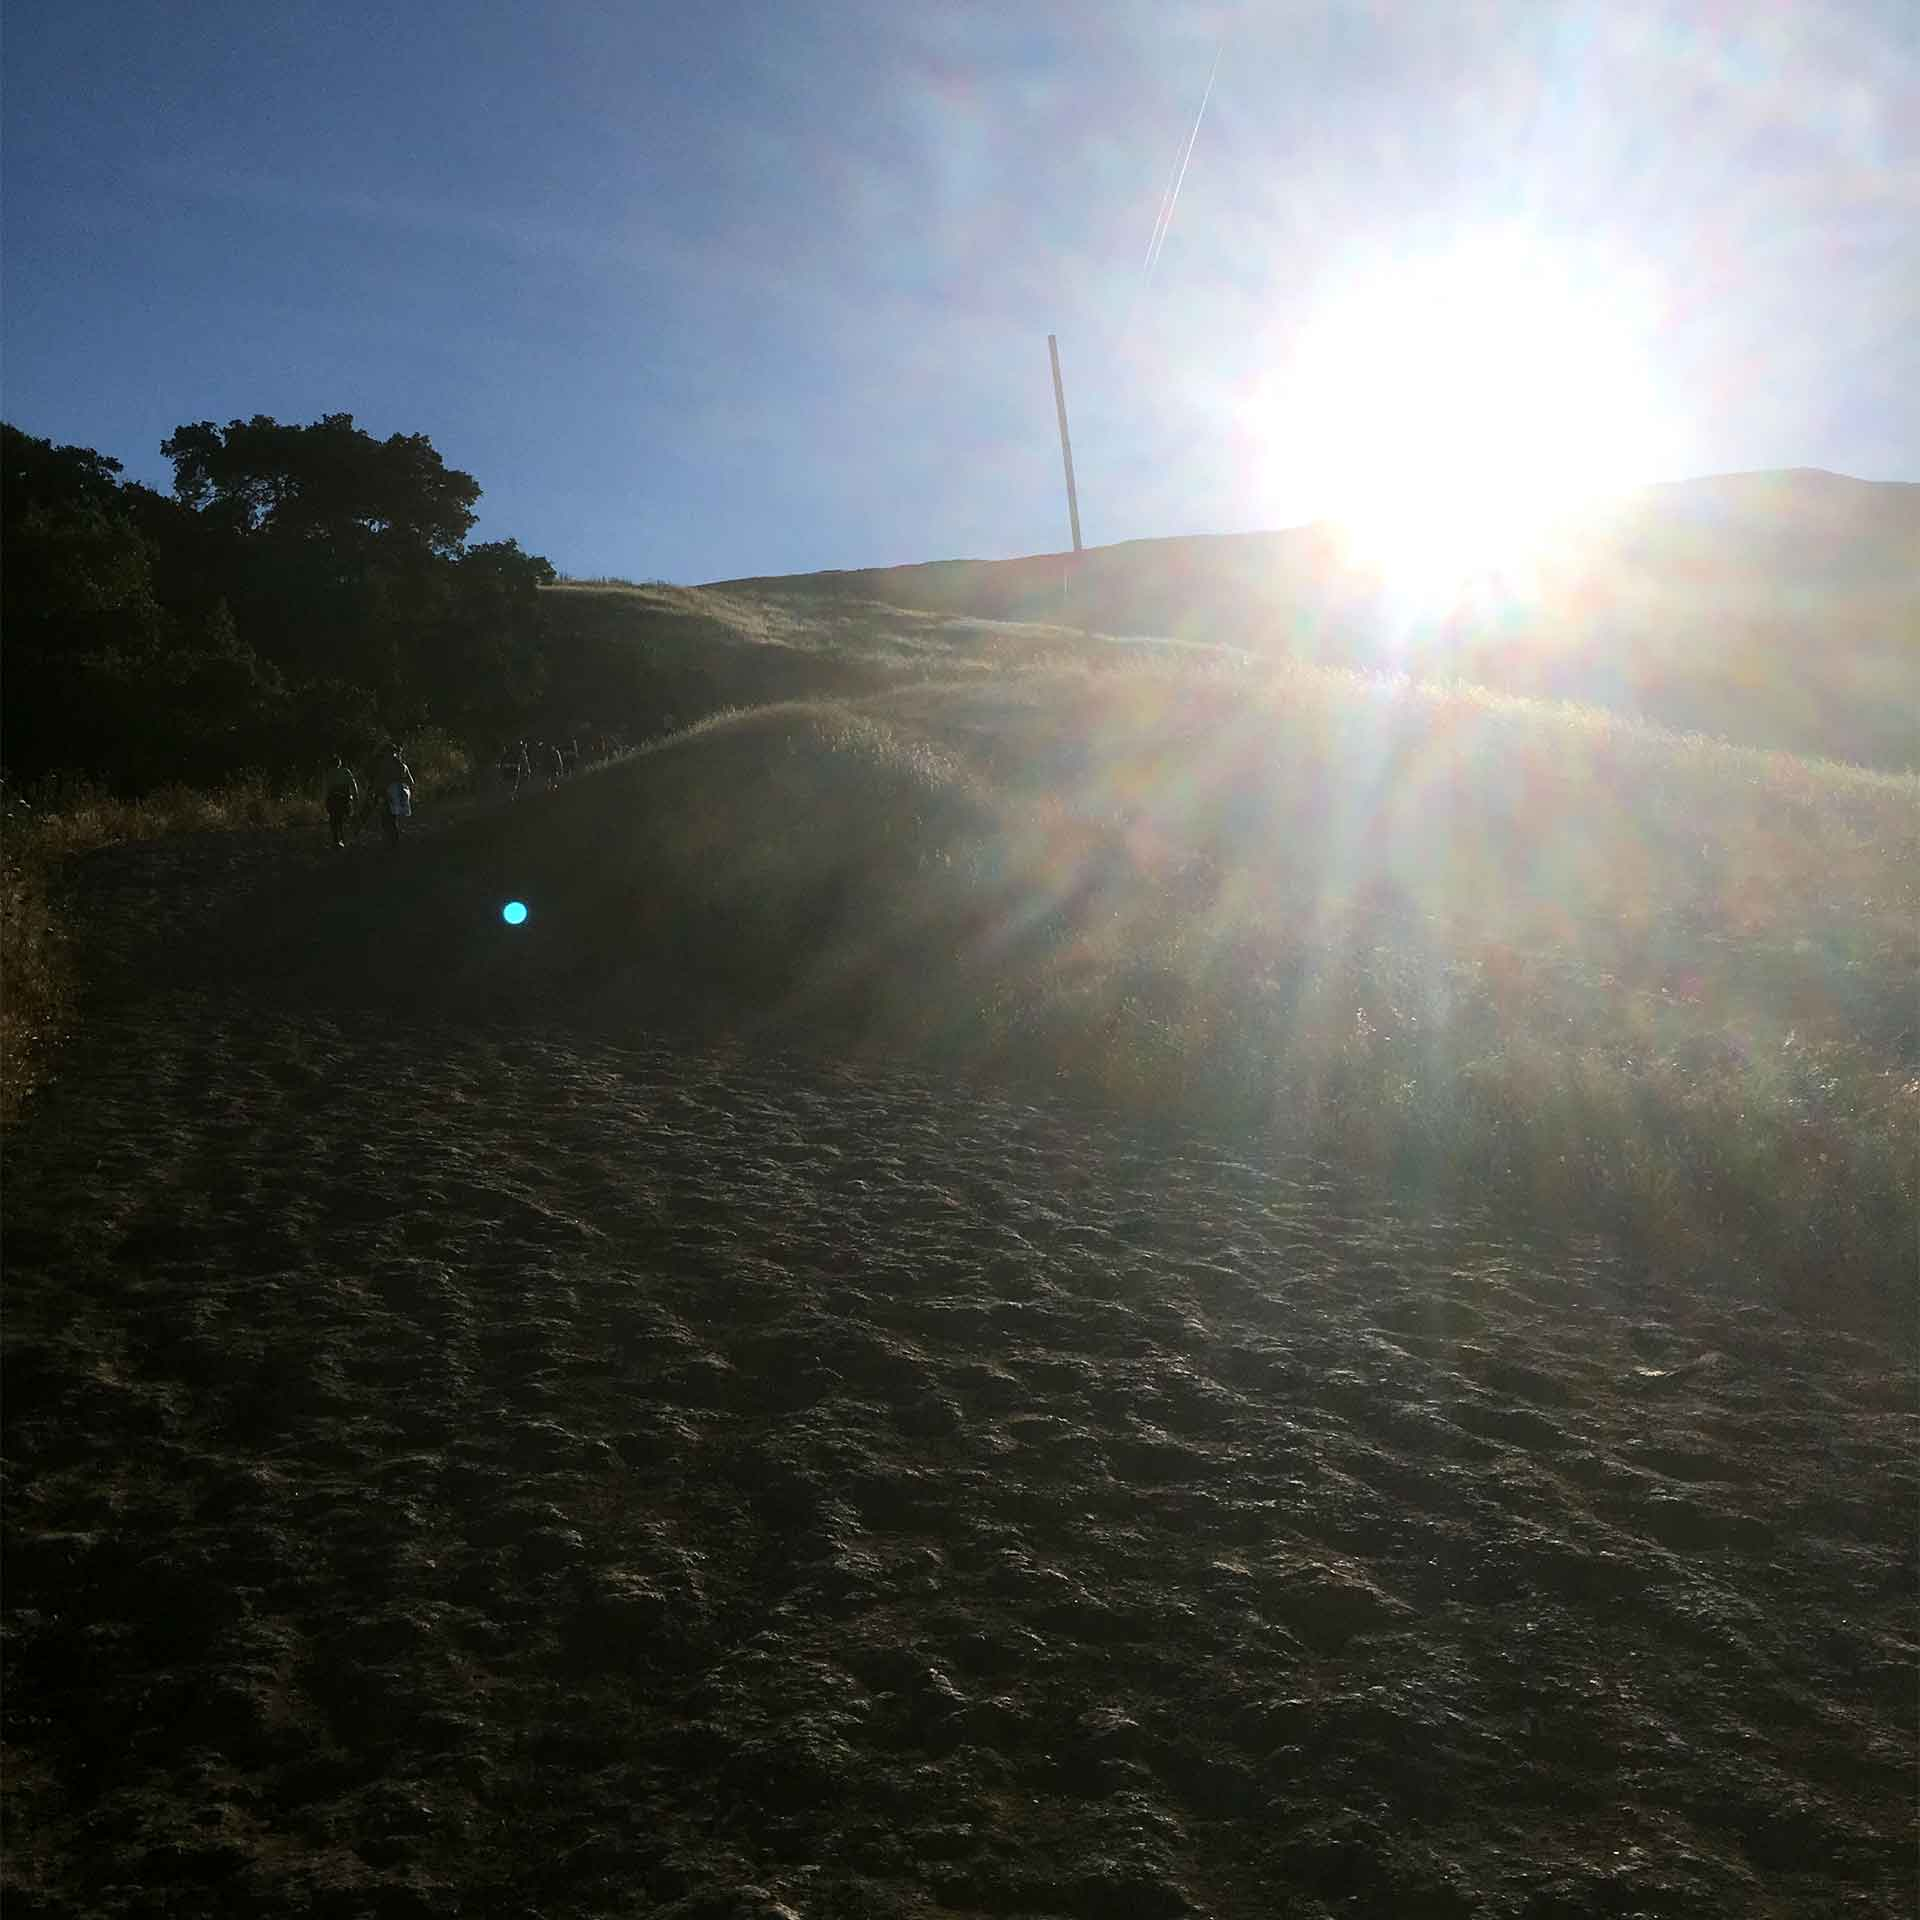 Photos from To Mission Peak 12